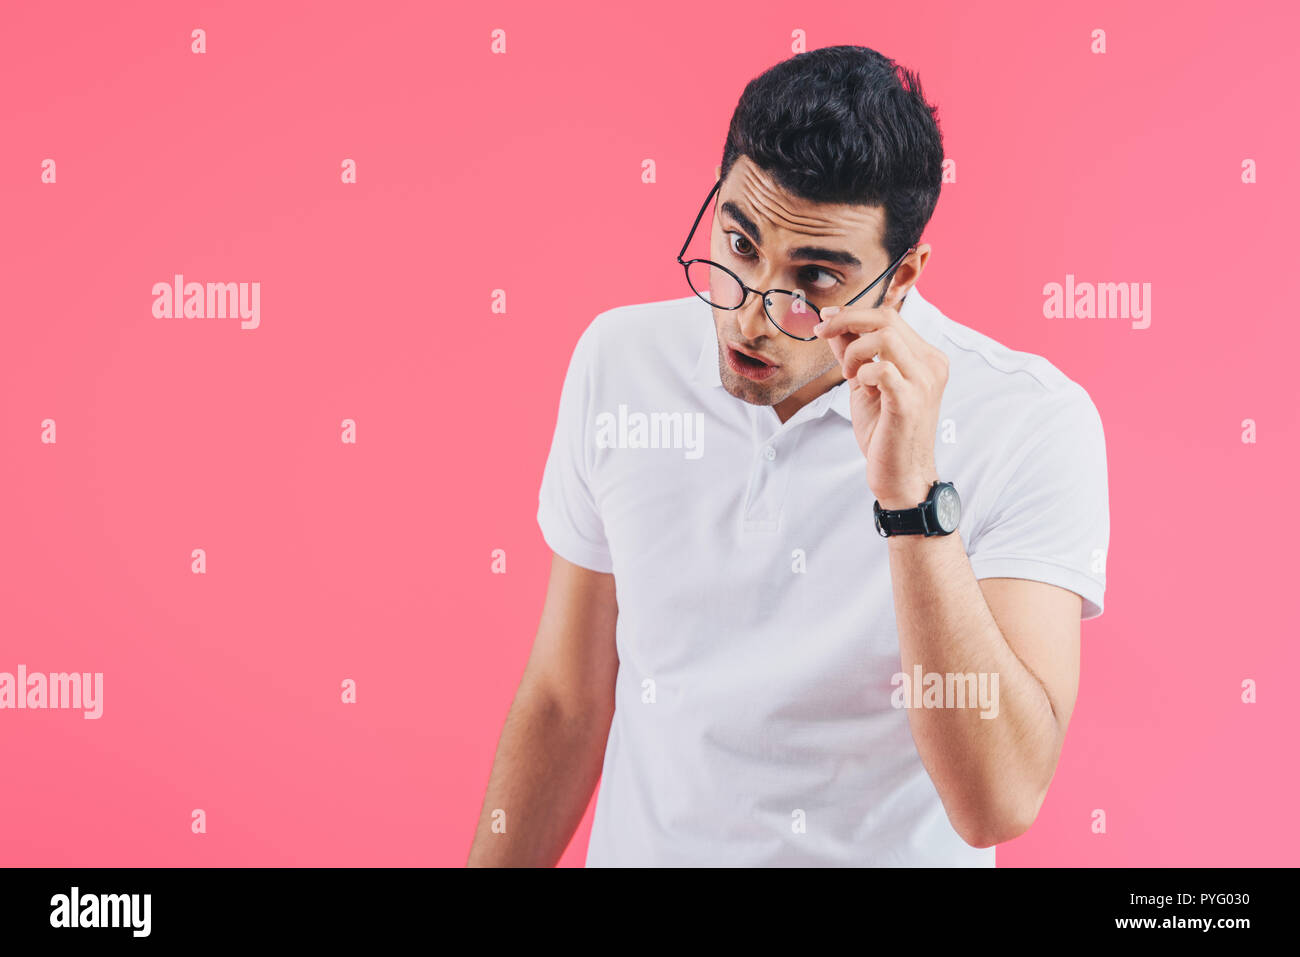 handsome man grimacing and touching glasses isolated on pink - Stock Image